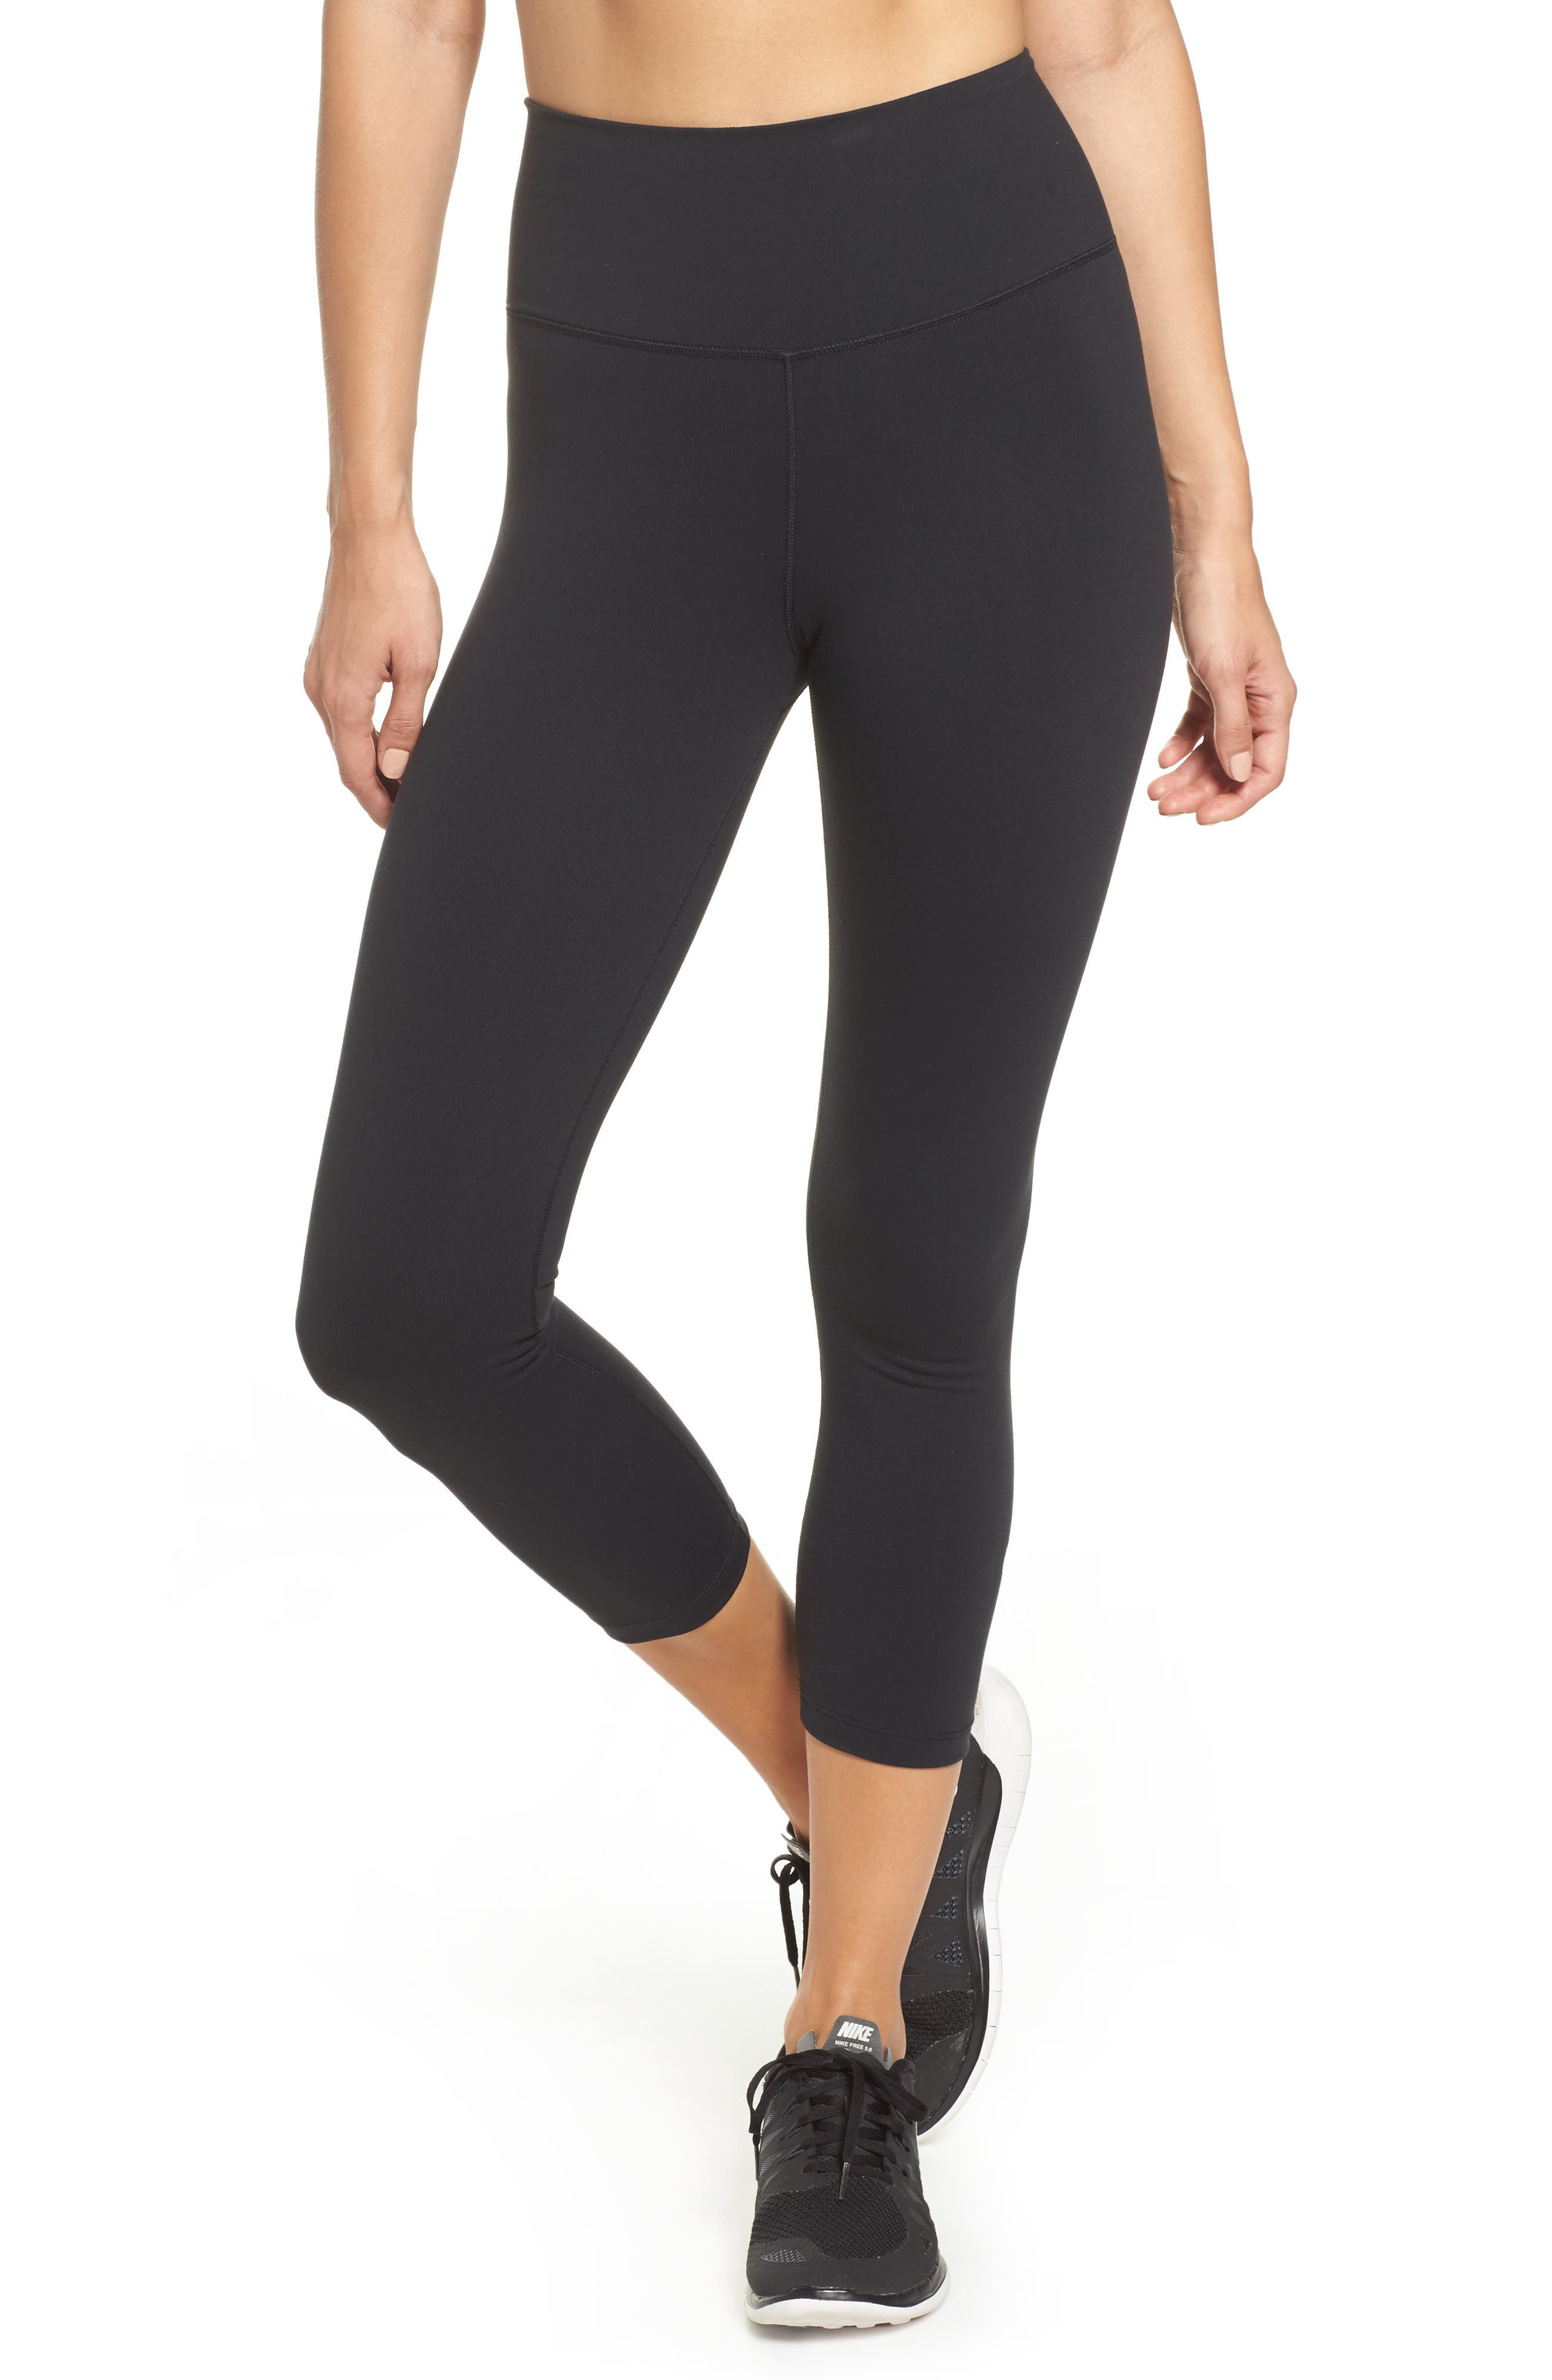 Alternate Image 1 Selected - Nike Sculpt Lux High Waist Training Capris